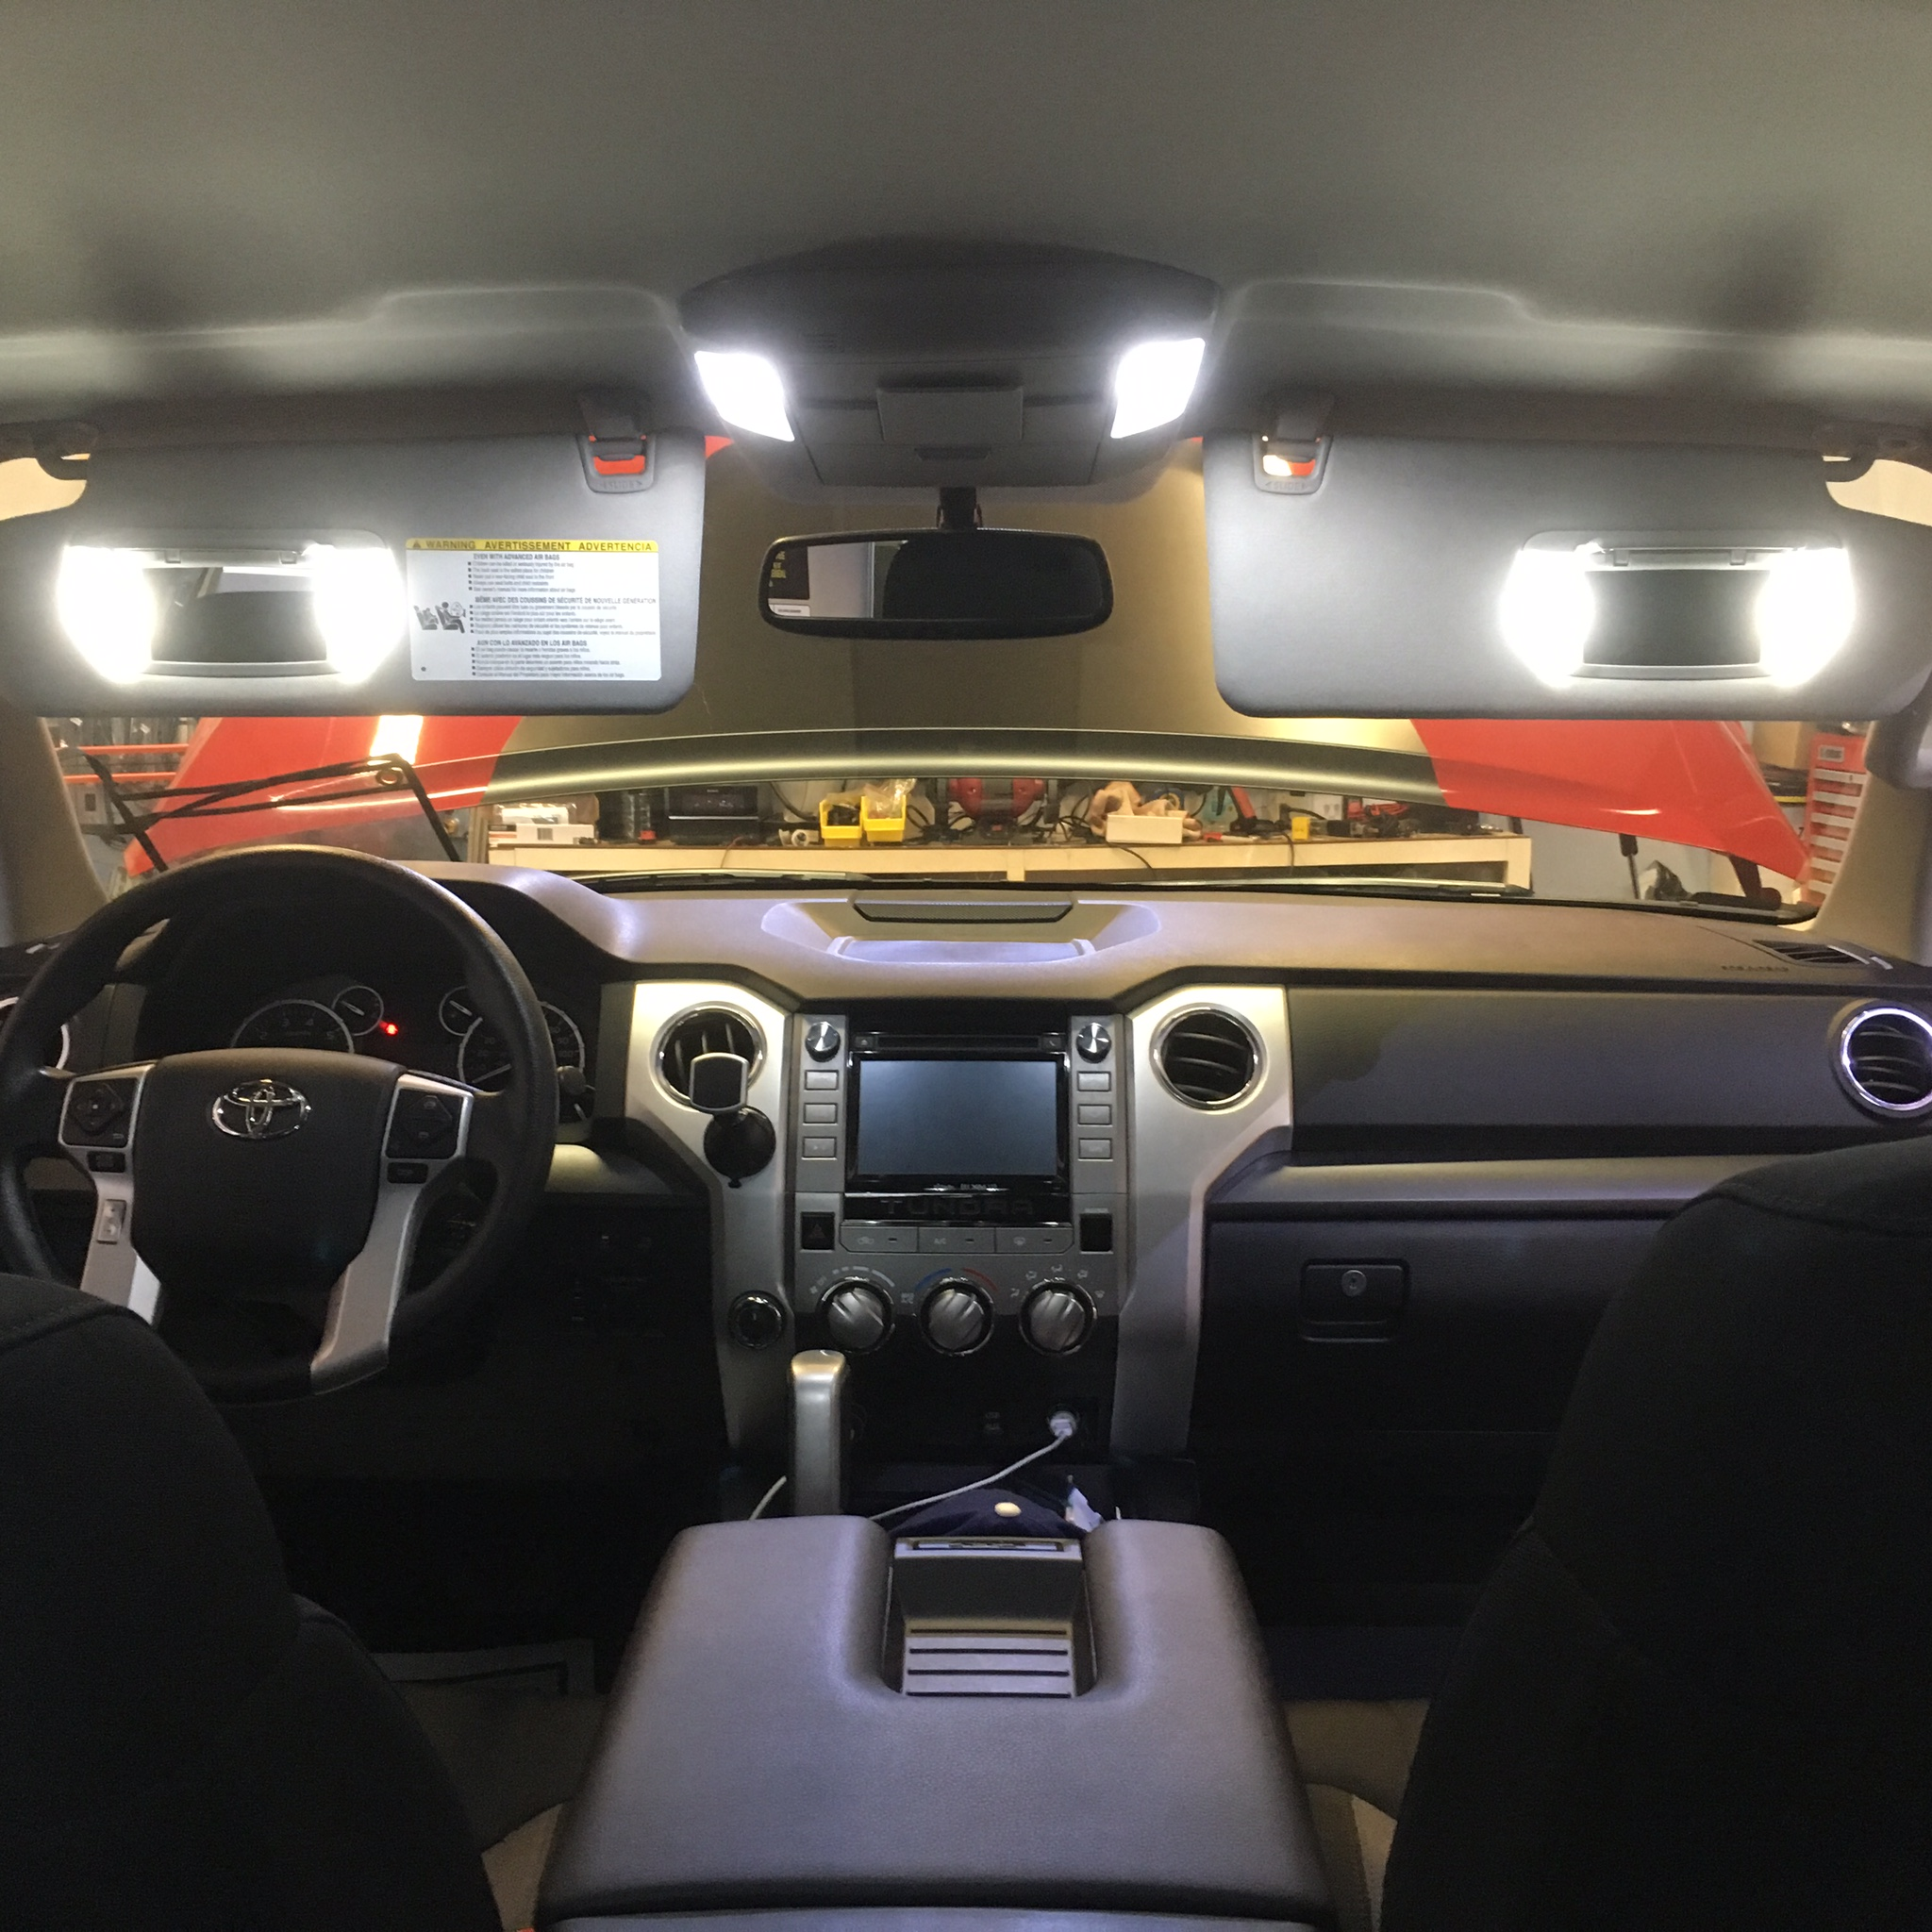 VLEDS Blue Front and Rear Interior Footwell Lighting Kit for Toyota Tundra